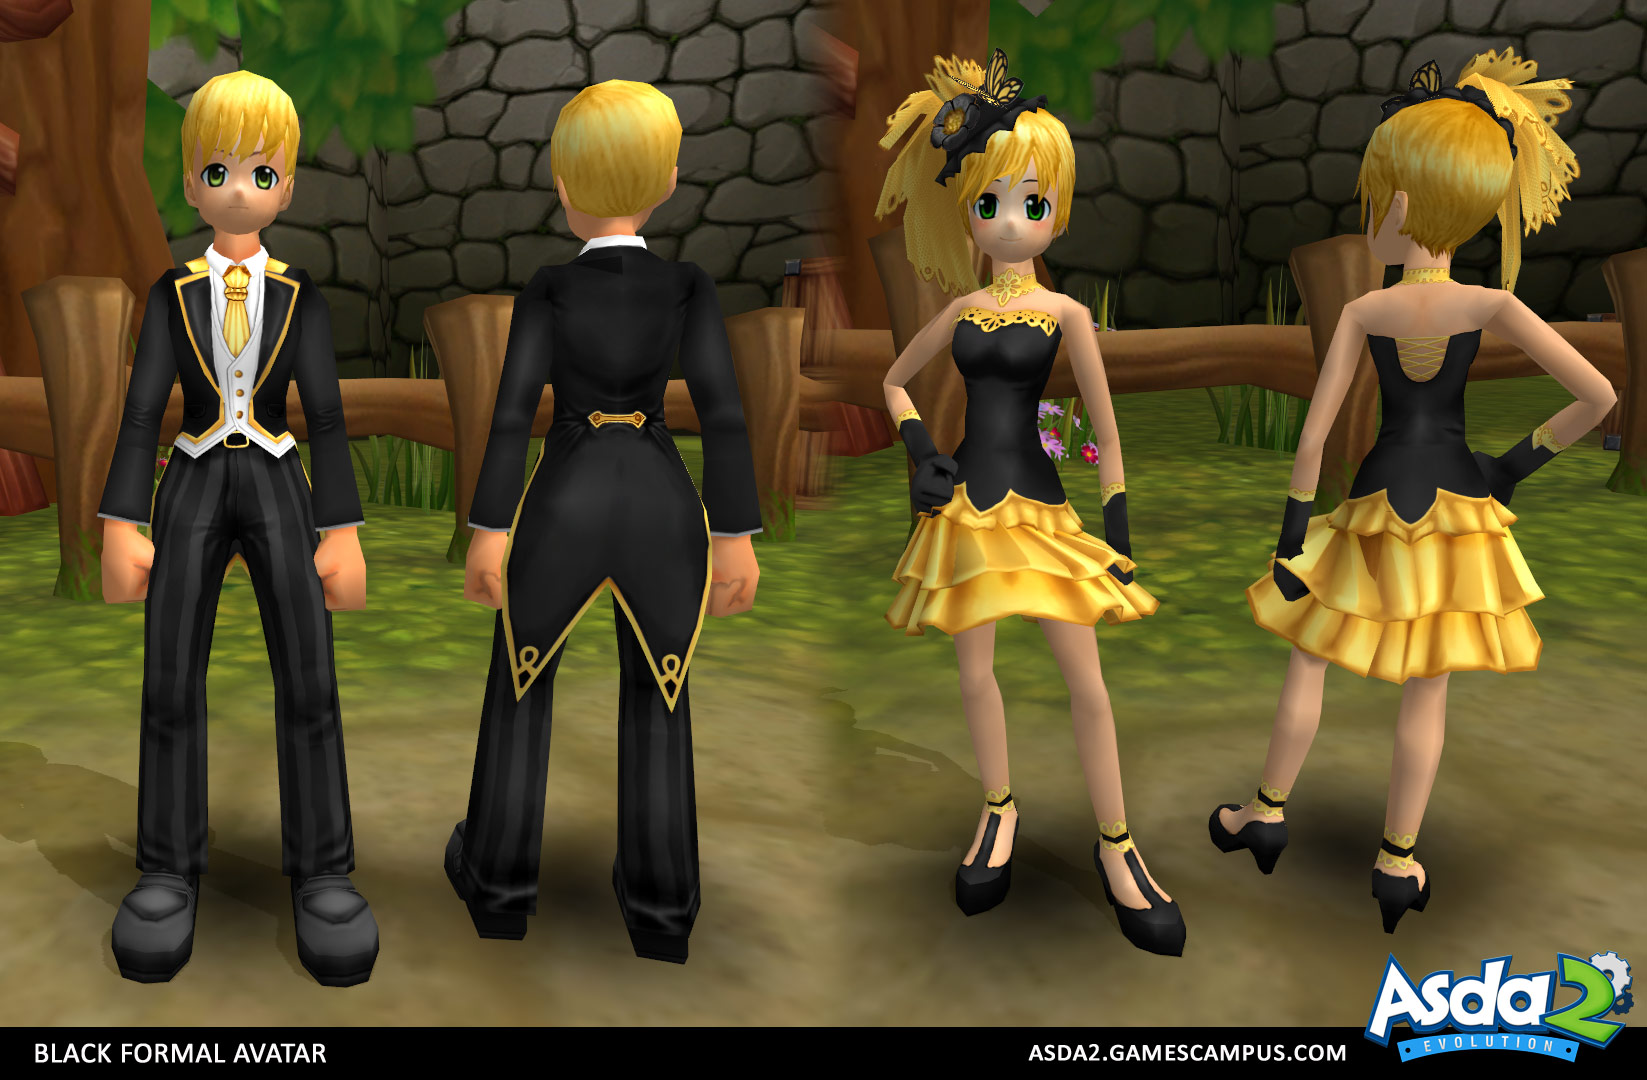 Best Anime MMORPG - Asda 2 - Black Formal Set